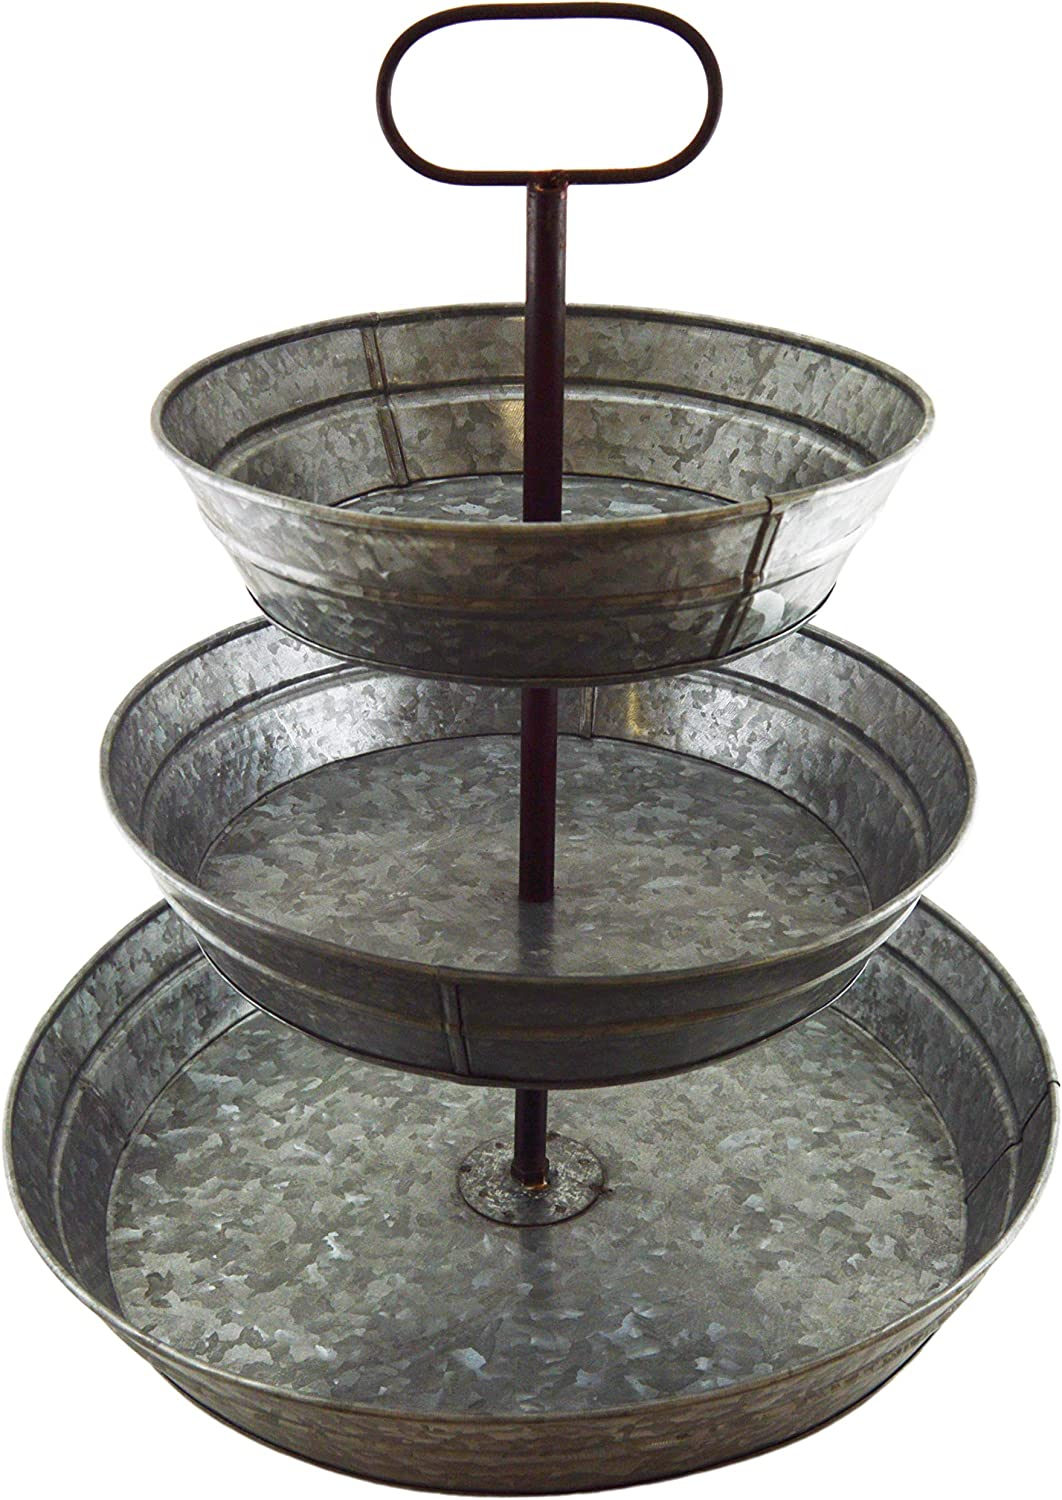 3 Tier Galvanized Steel Serving Tray with Handle, Rustic Vintage Farmhouse Style Party Platters for Cupcakes, Fruit, and Other Desserts or Foods - SciencePurchase